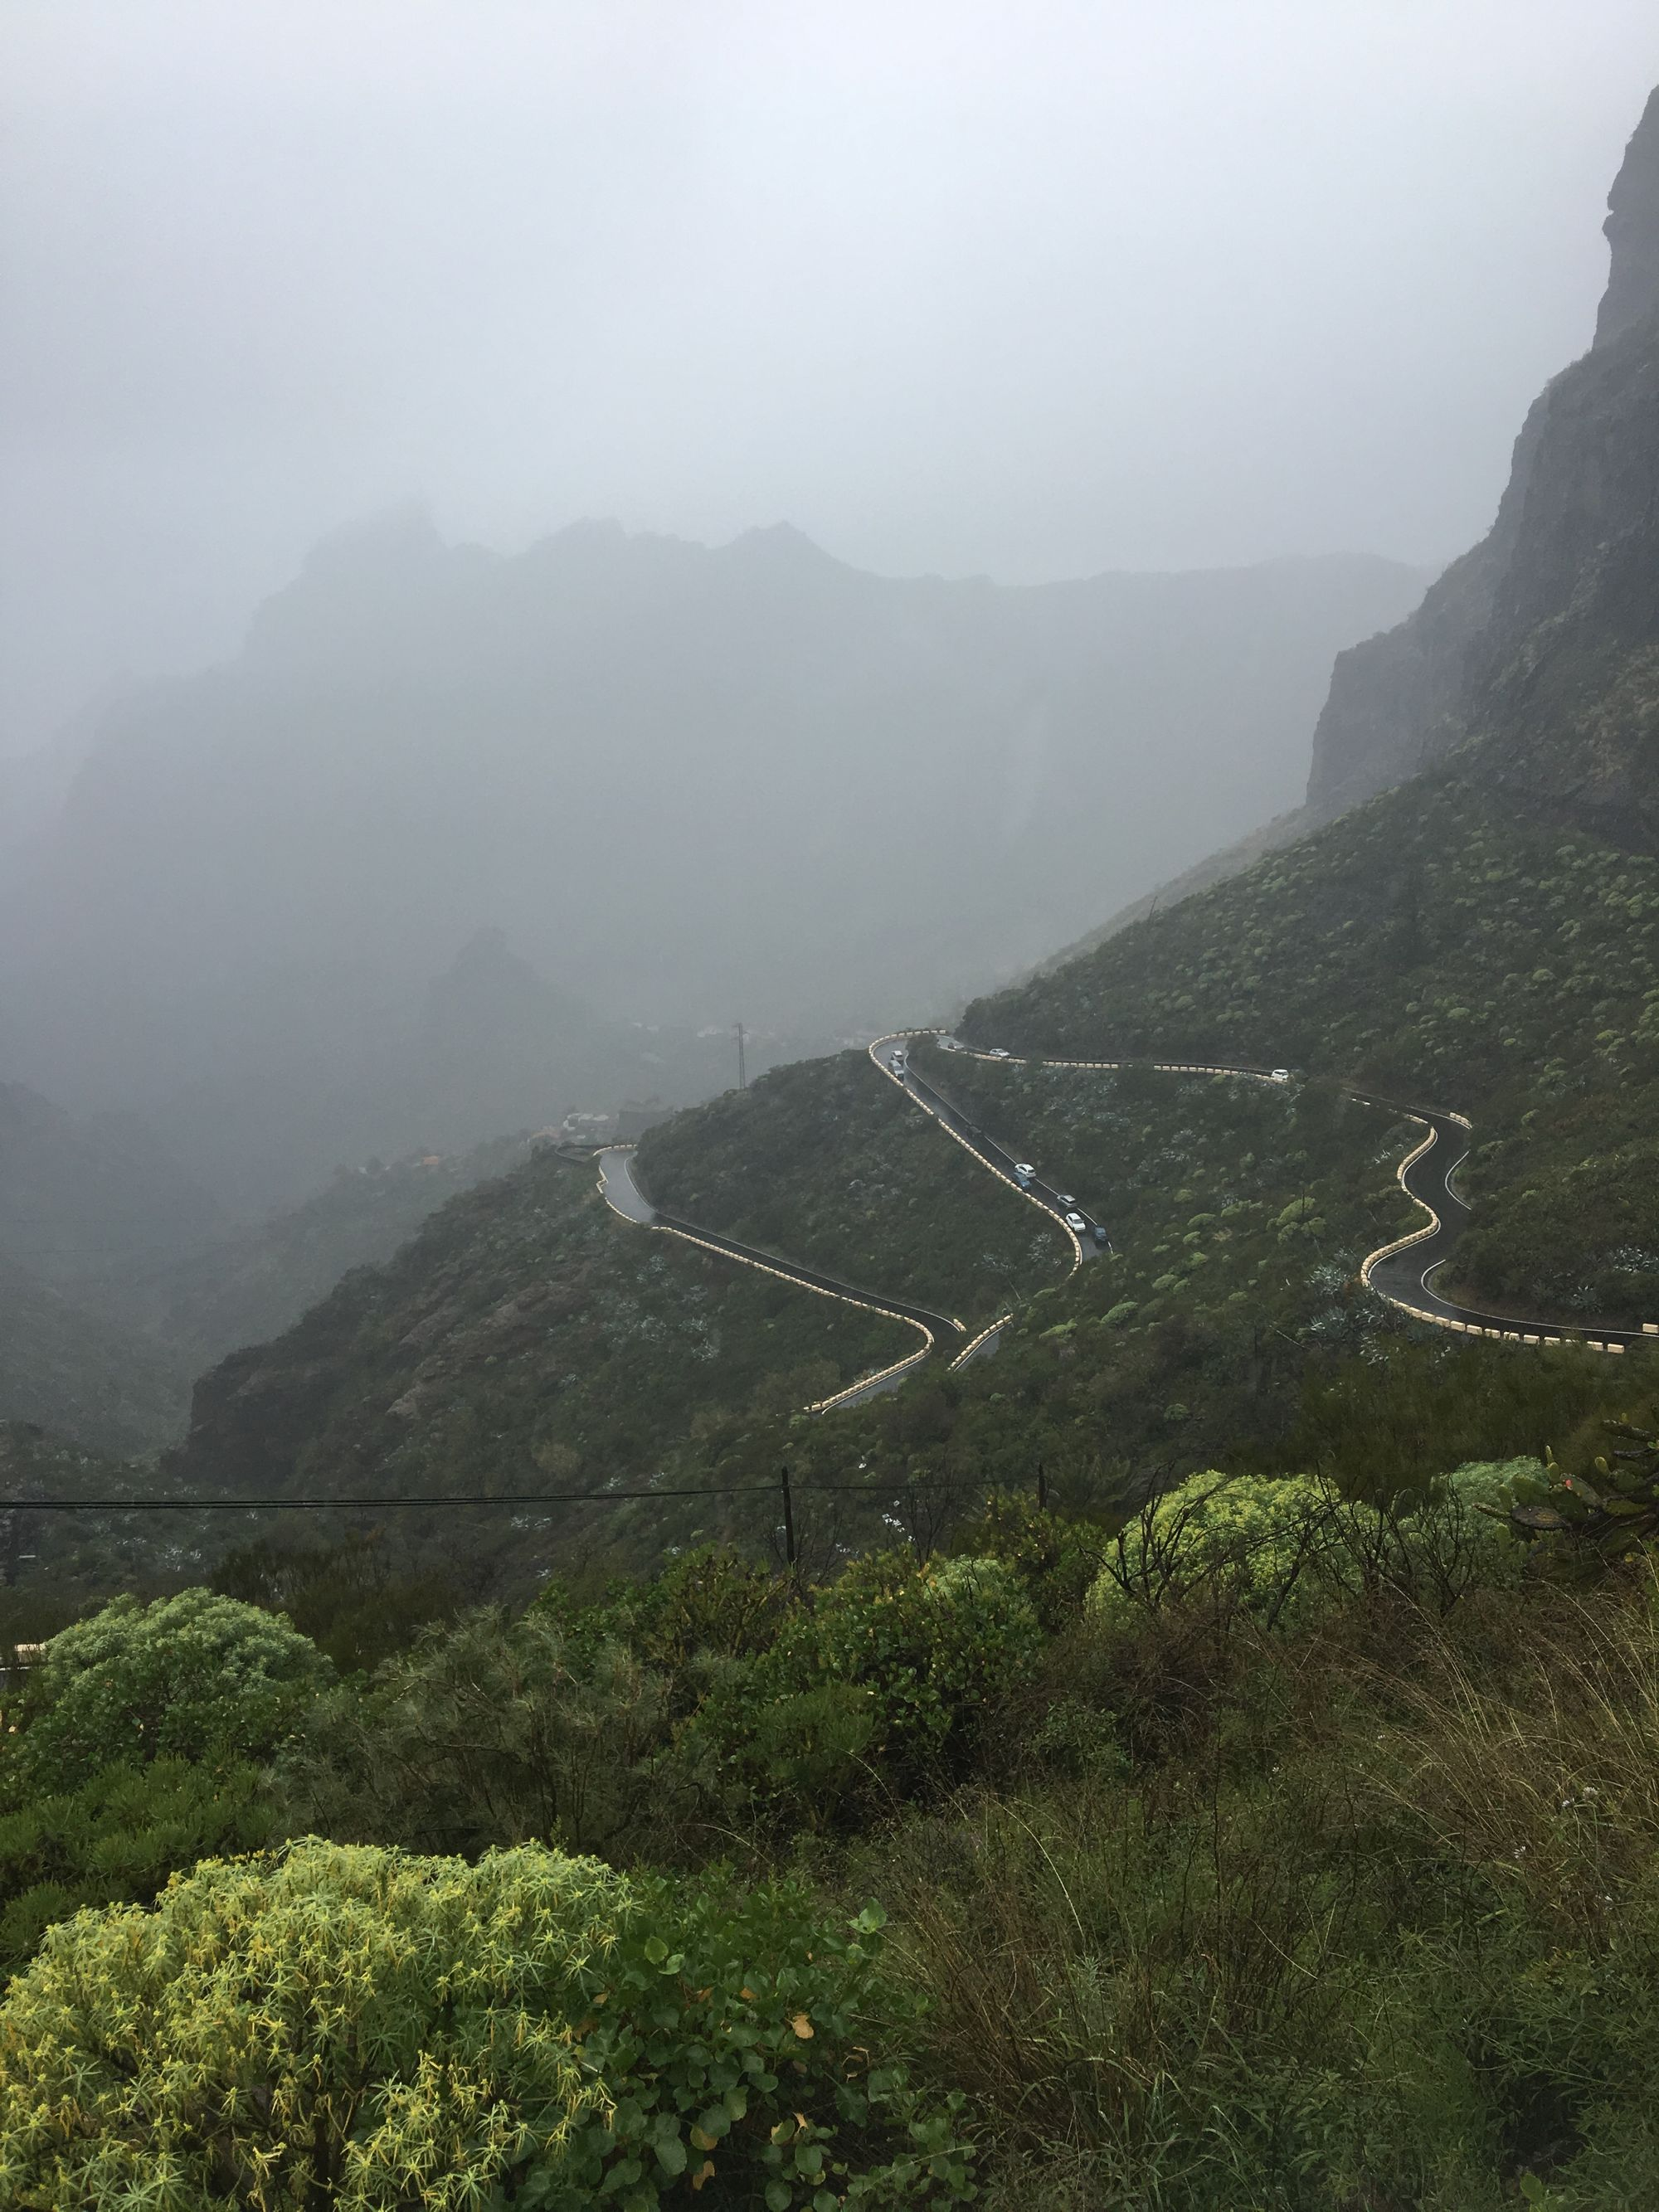 Cycling up Masca in the Teno Massif on the island of Tenerife